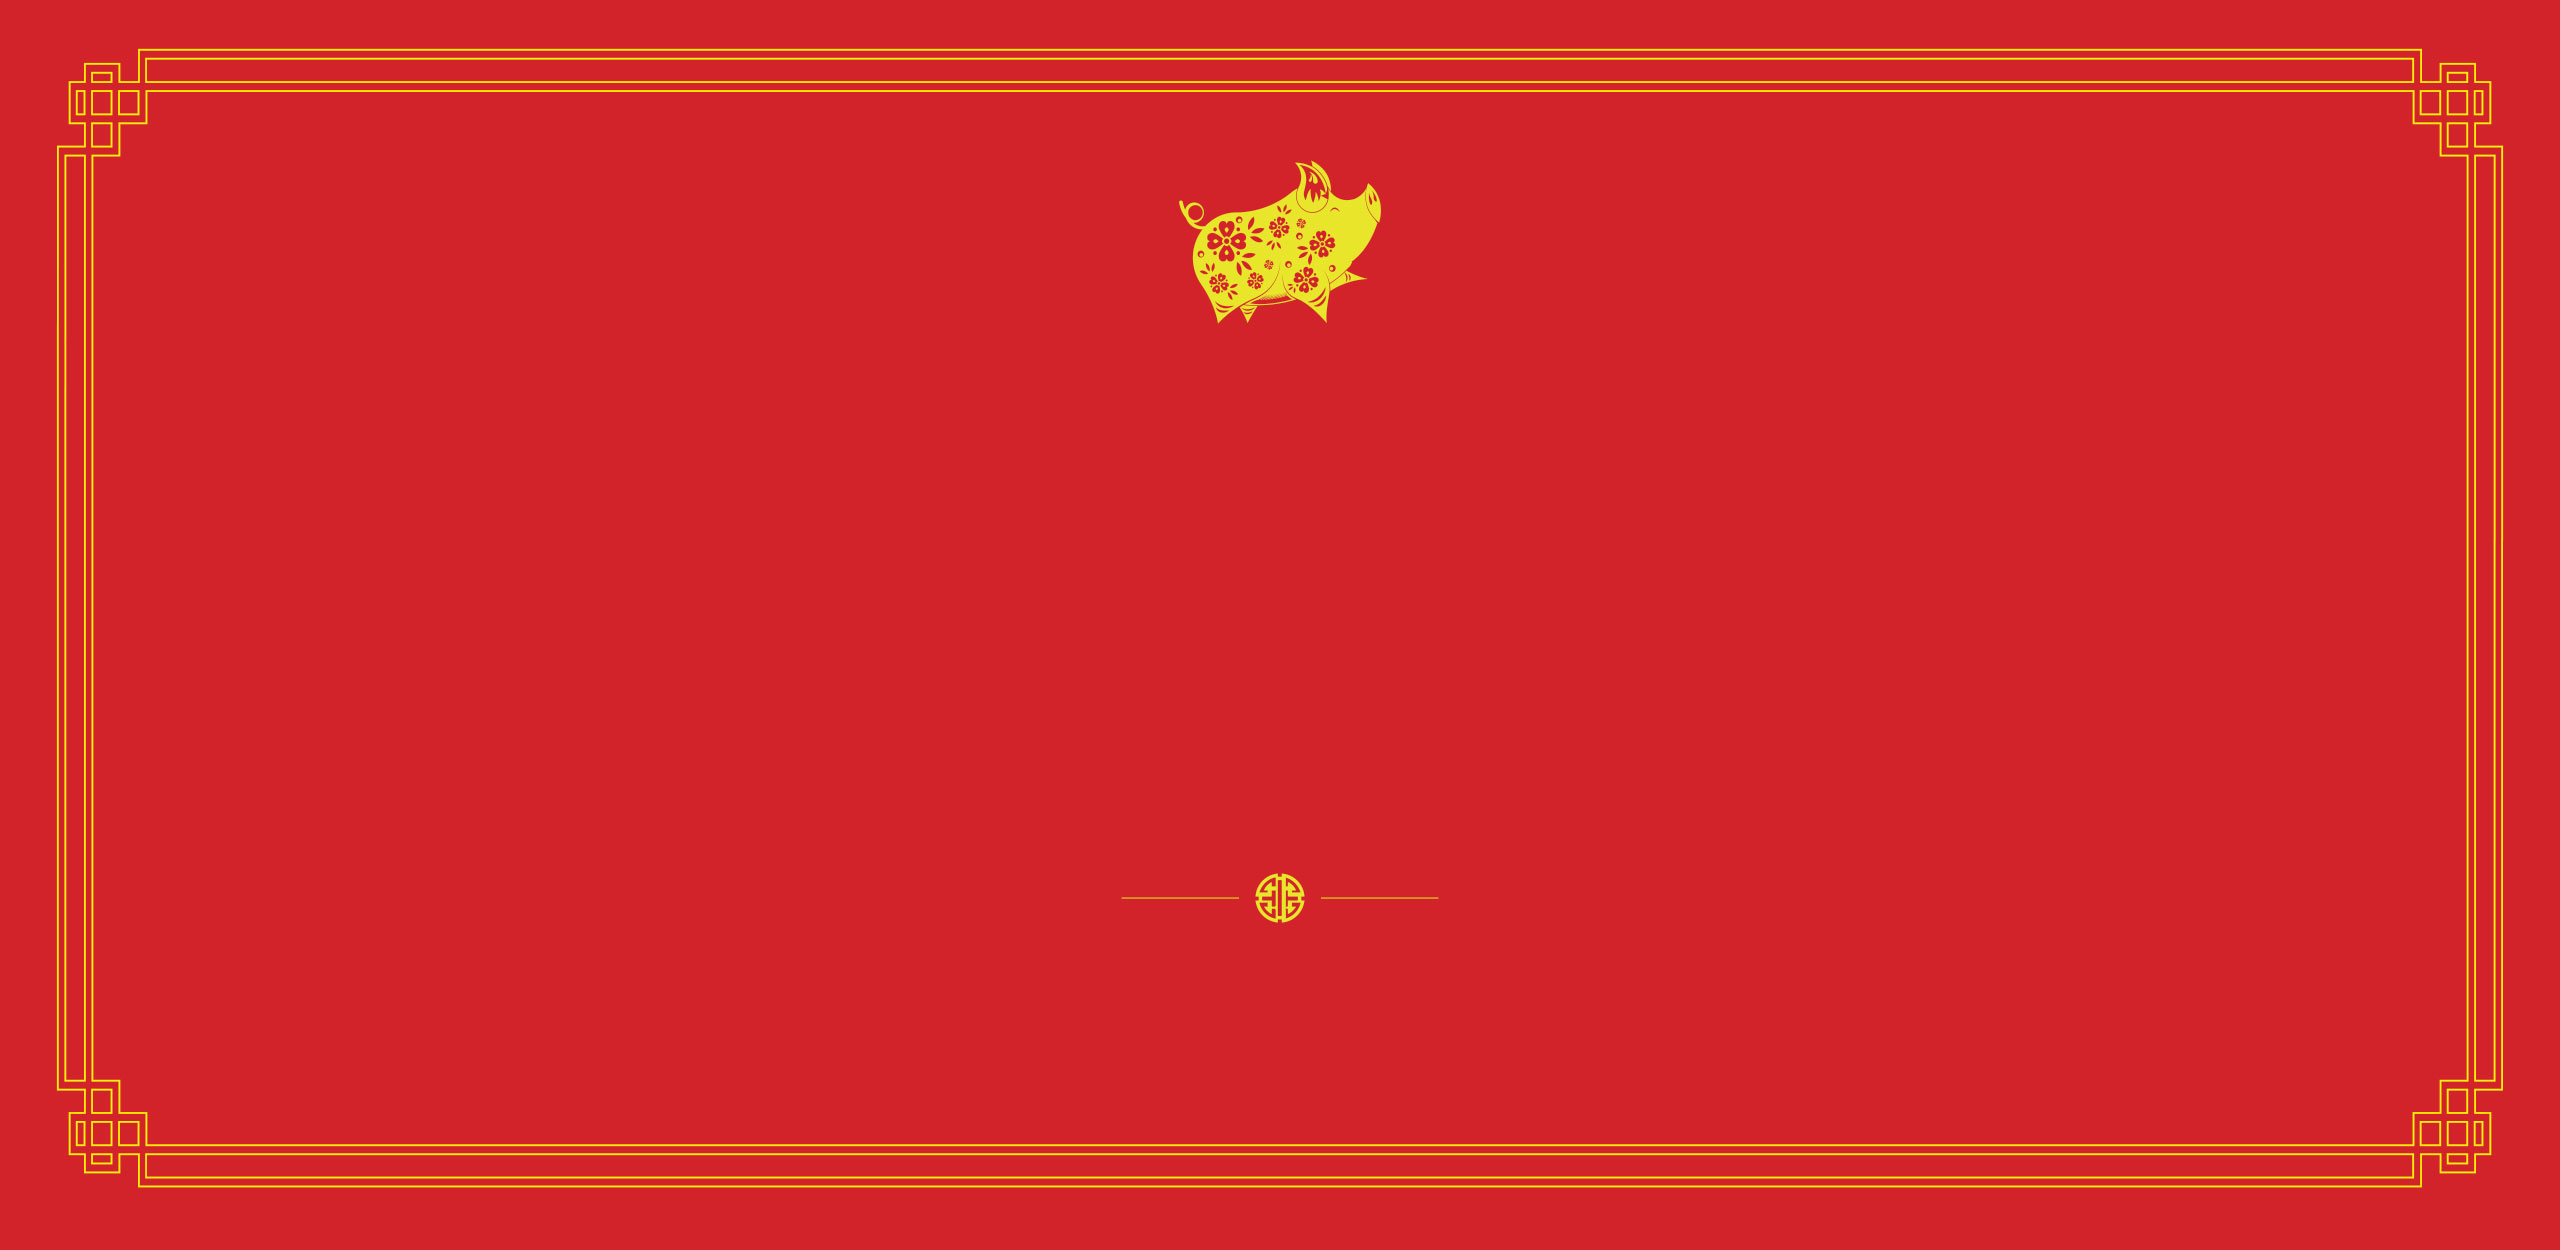 Chinese New Year BG